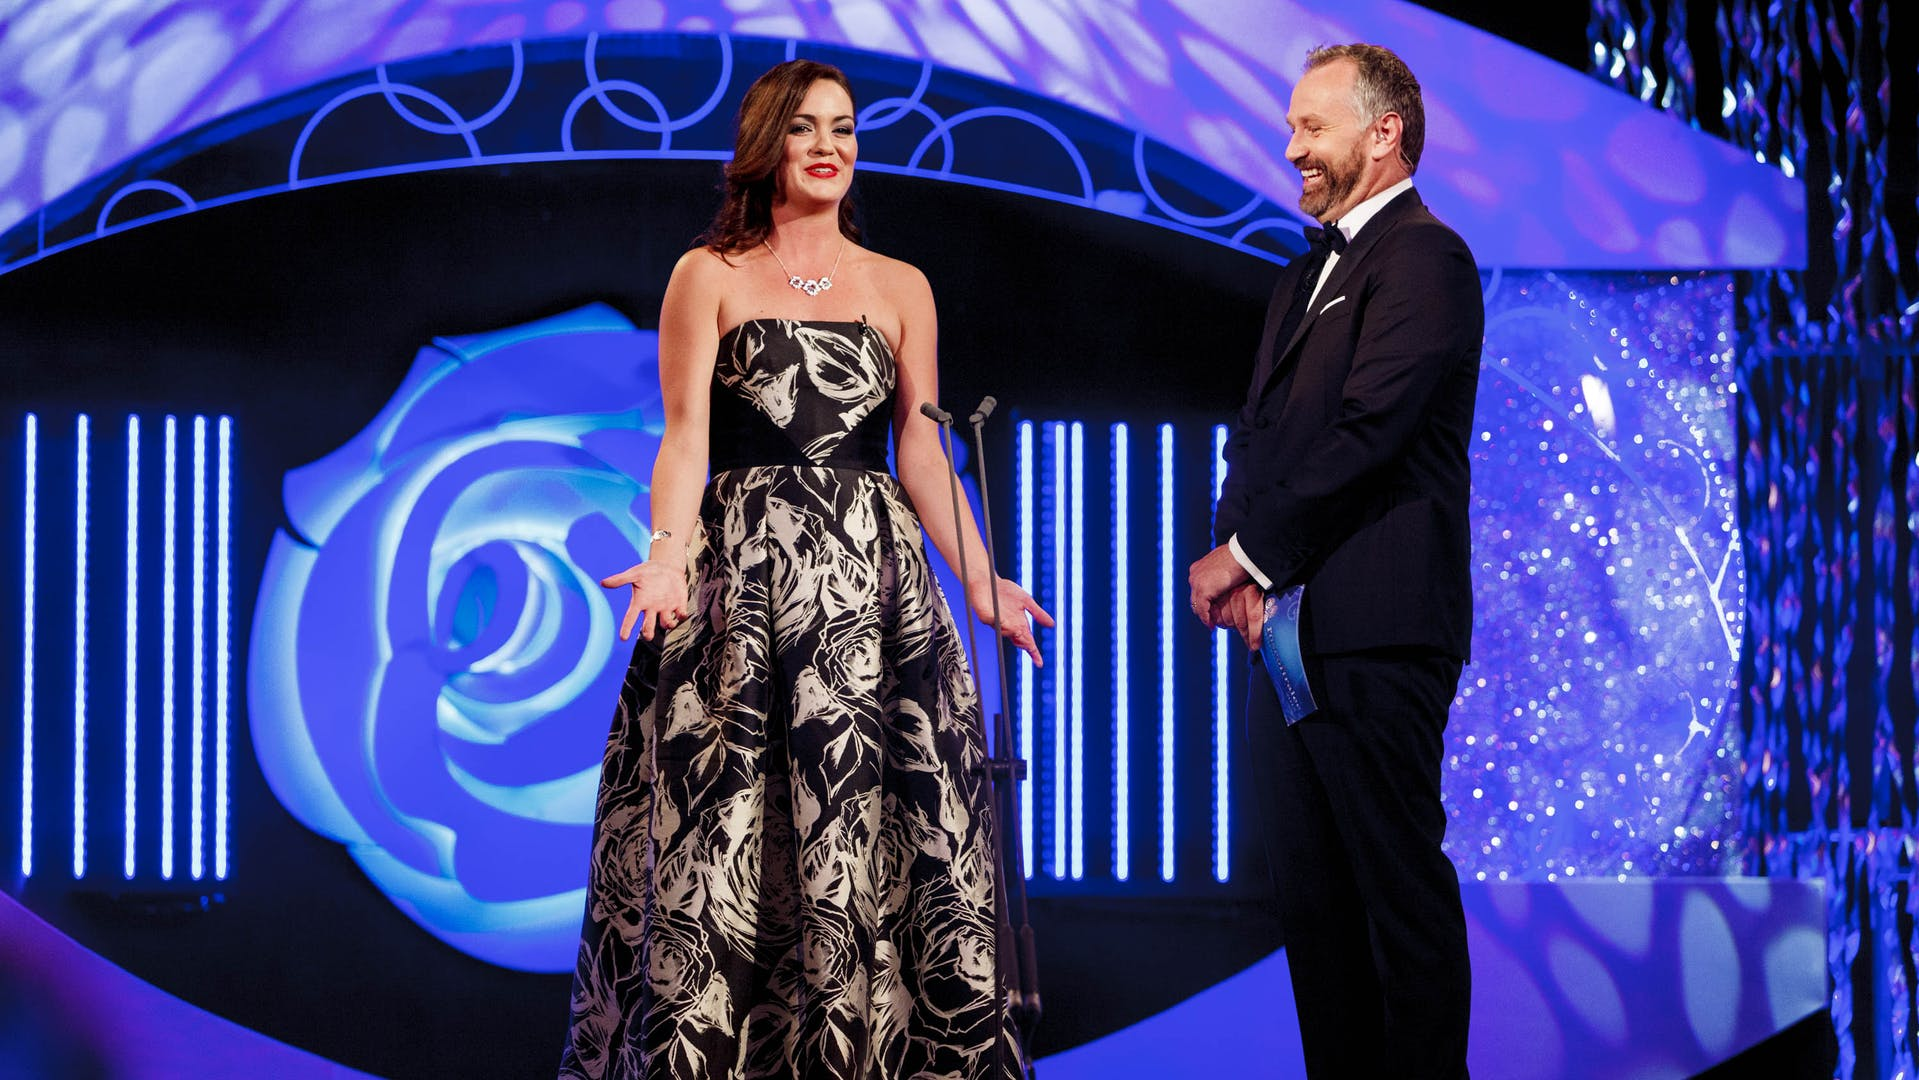 The marketing technology behind the Rose of Tralee Pageant